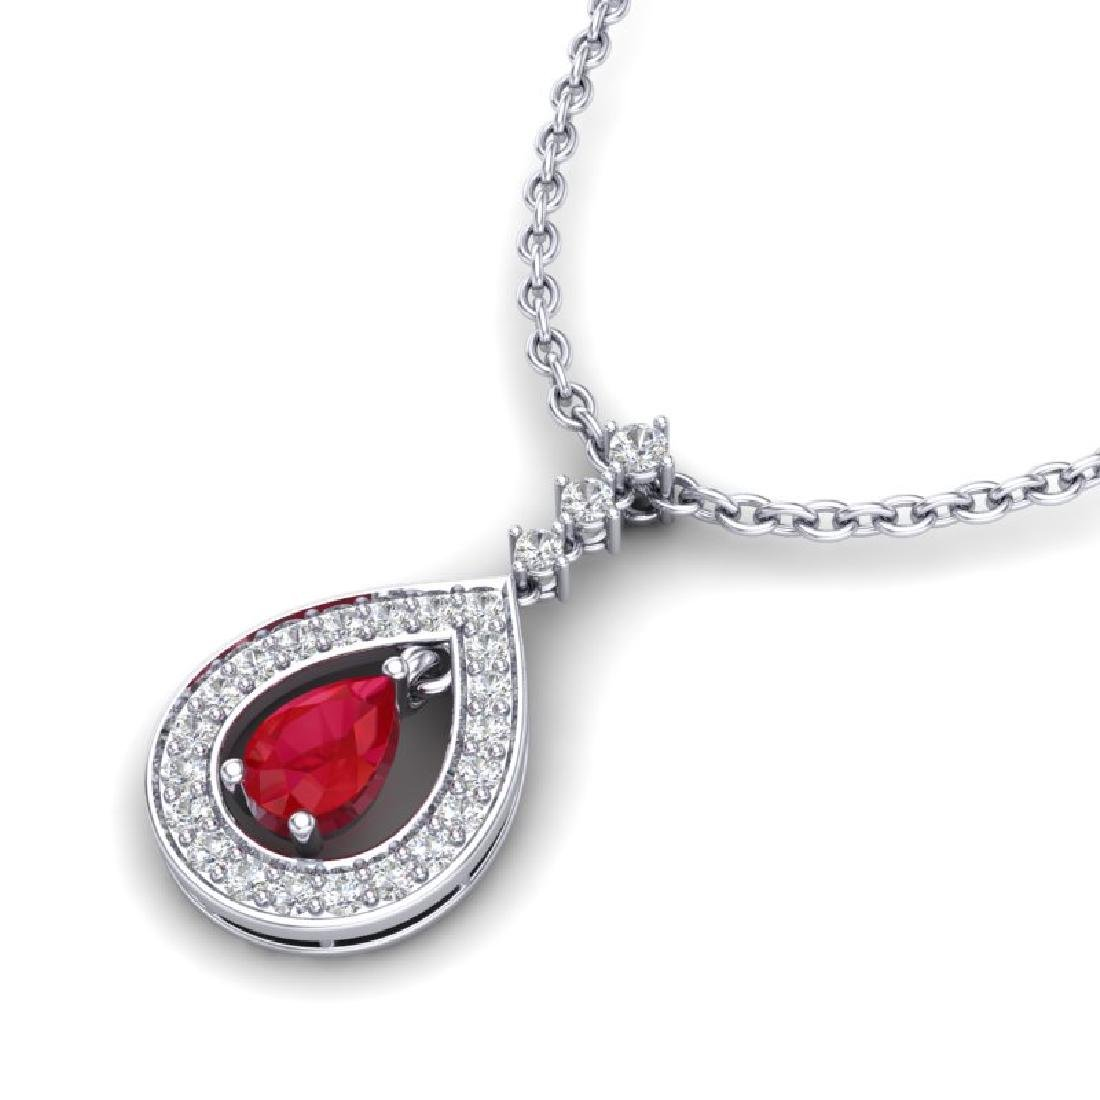 1.15 CTW Ruby & Micro Pave VS/SI Diamond Necklace